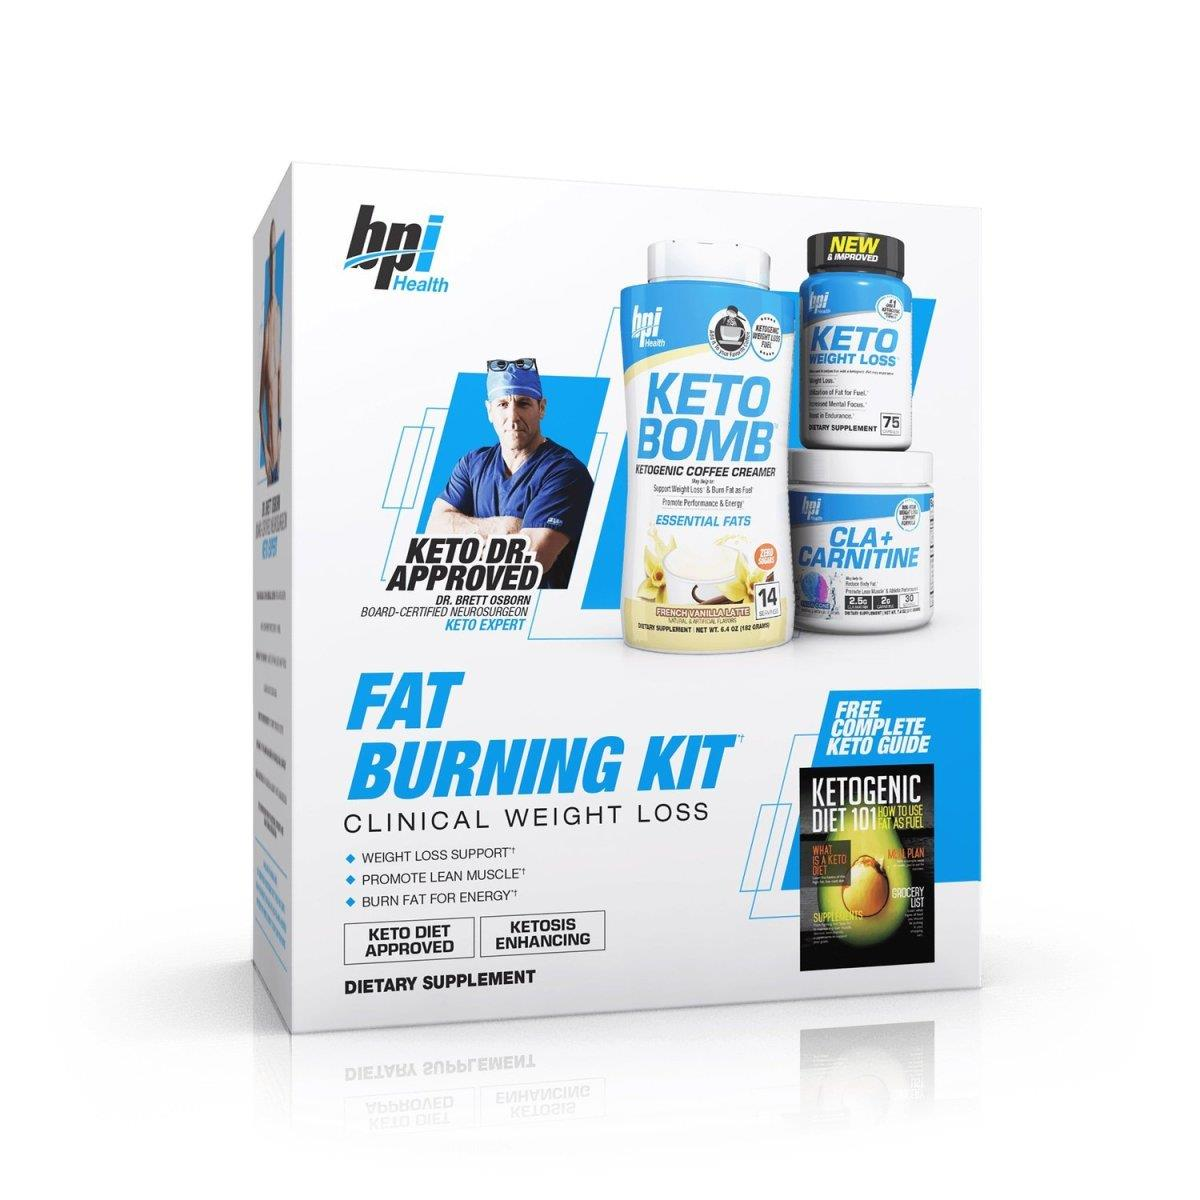 FAT BURNING KIT